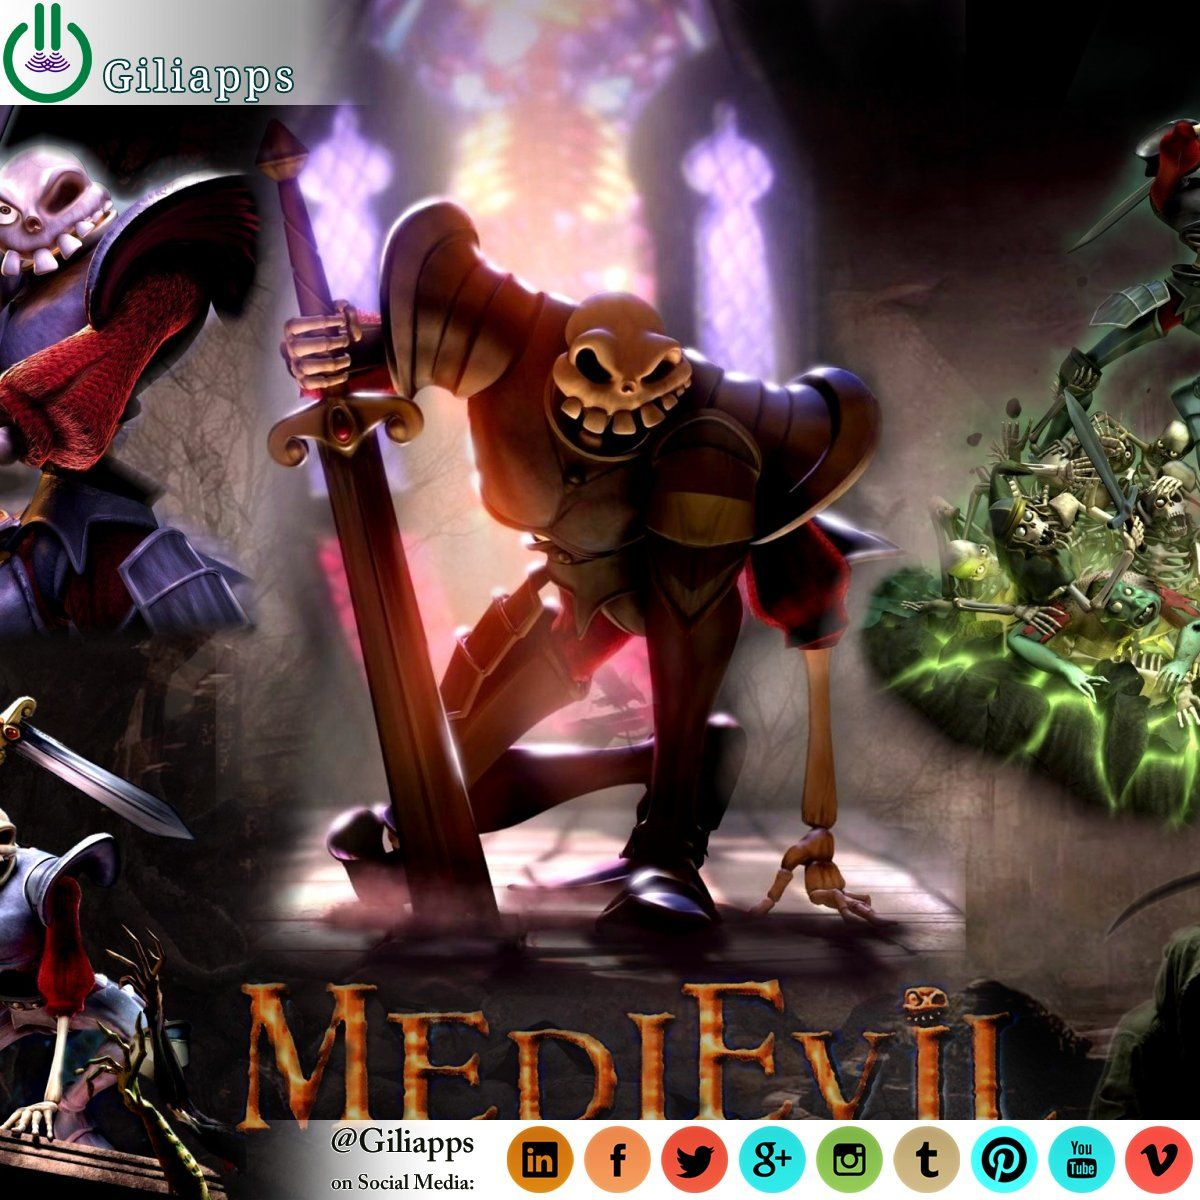 Watch The First Trailer For Medievil For Playstation 4 Retro Arcade Playstation Wallpaper